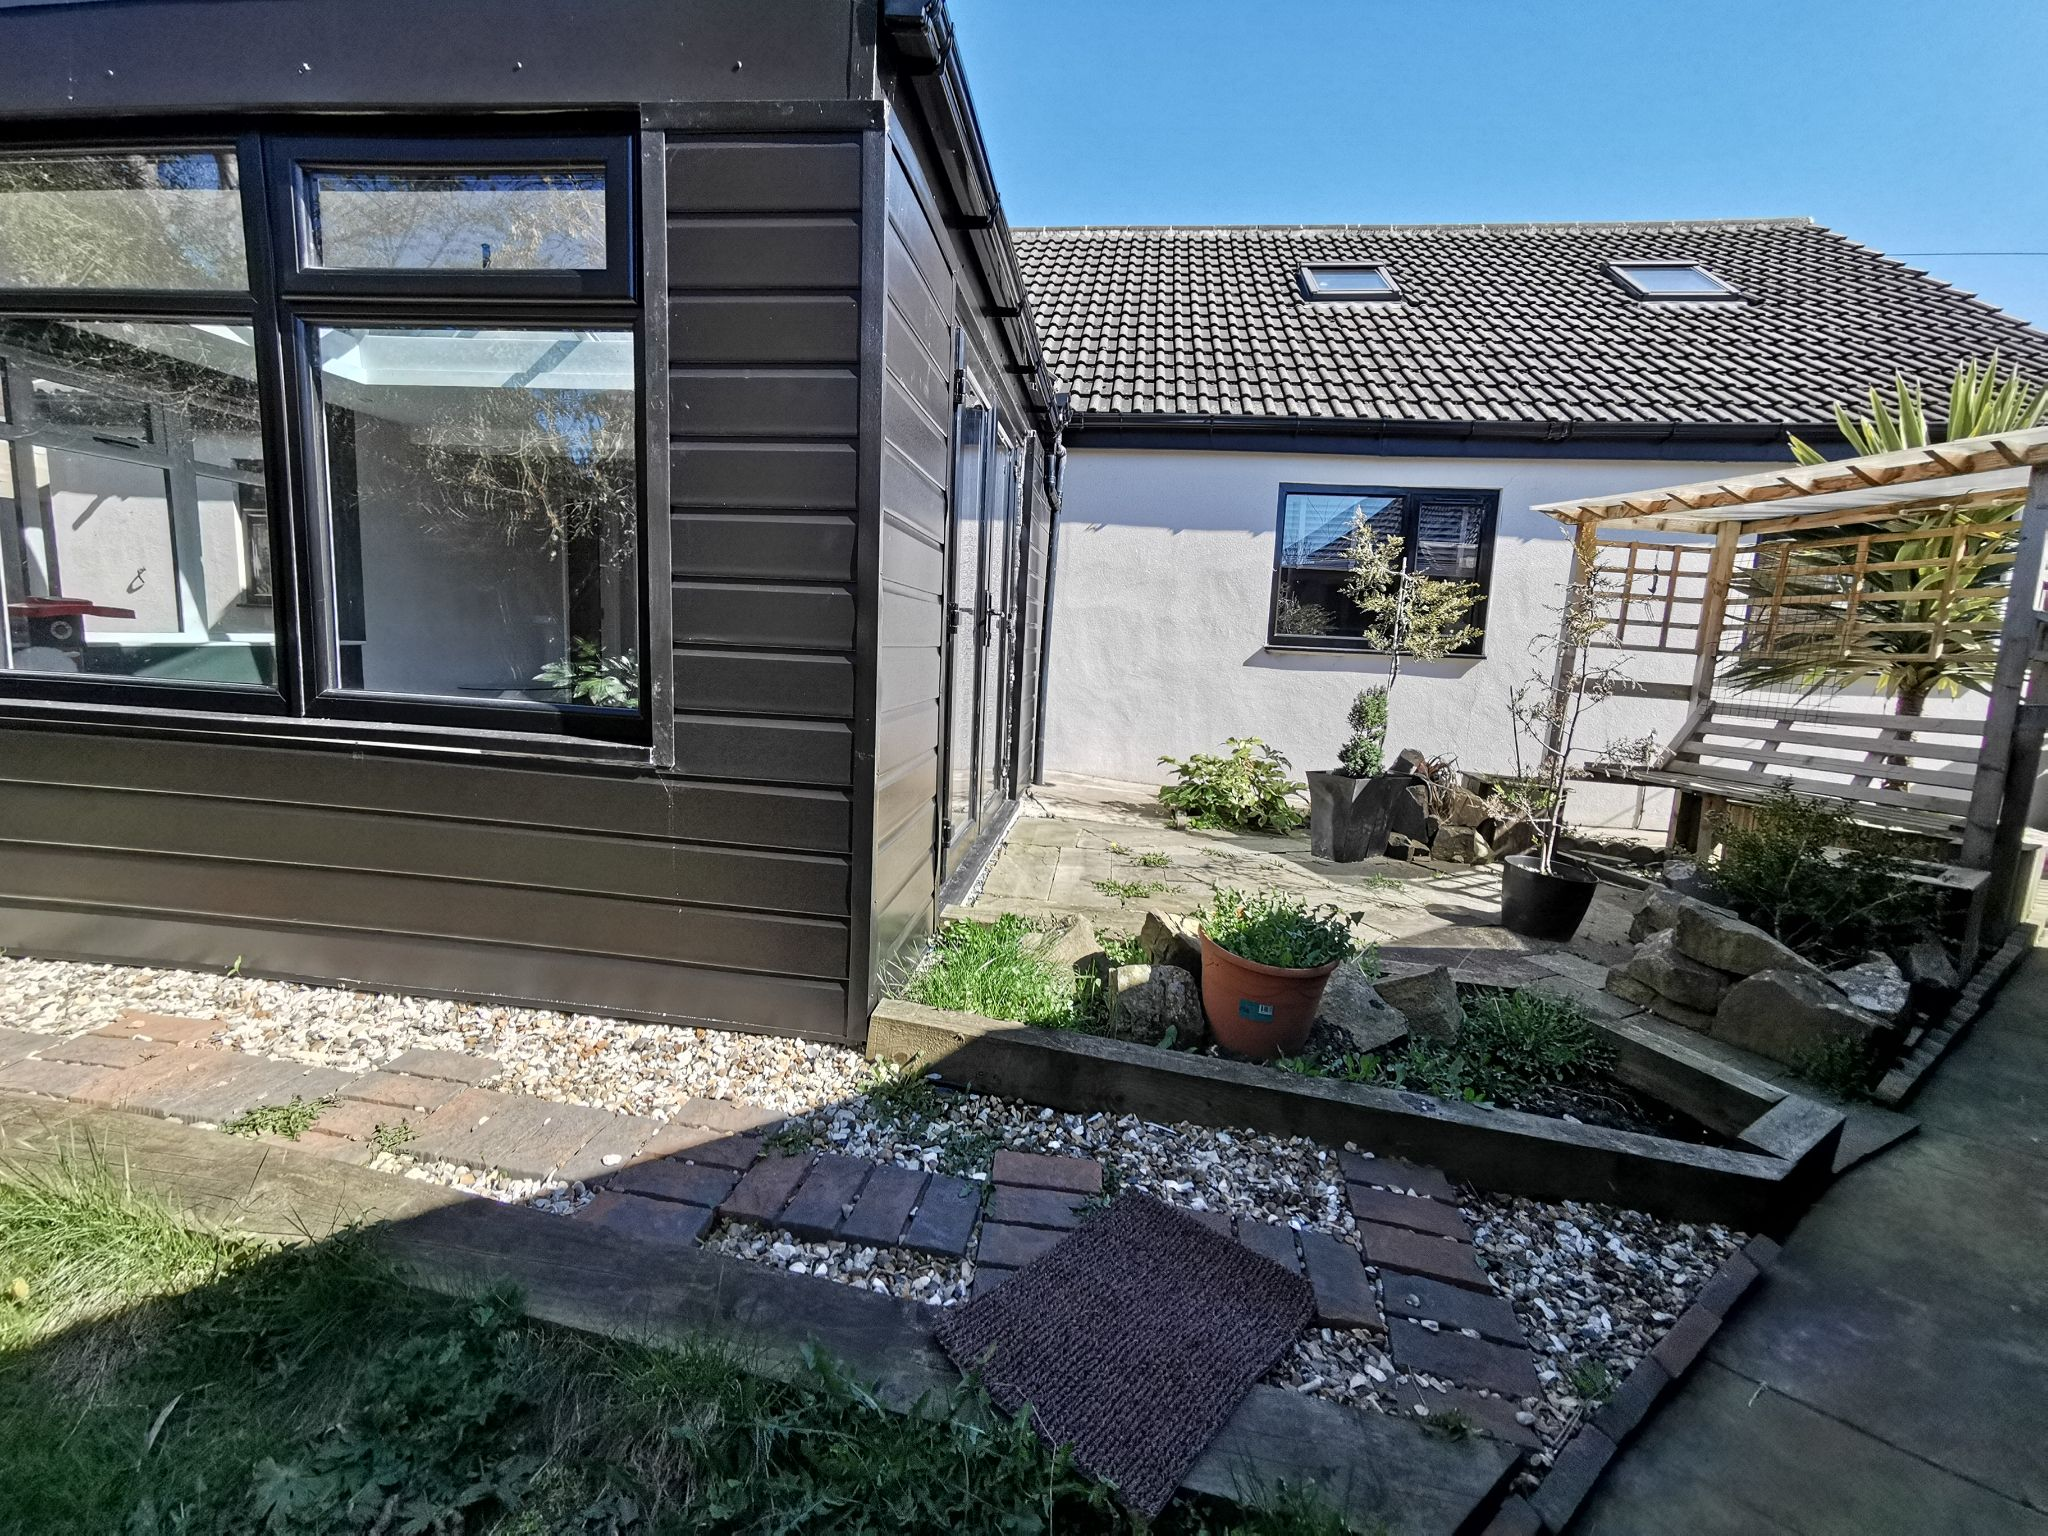 6 bedroom detached bungalow For Sale in Bradford - Photograph 2.